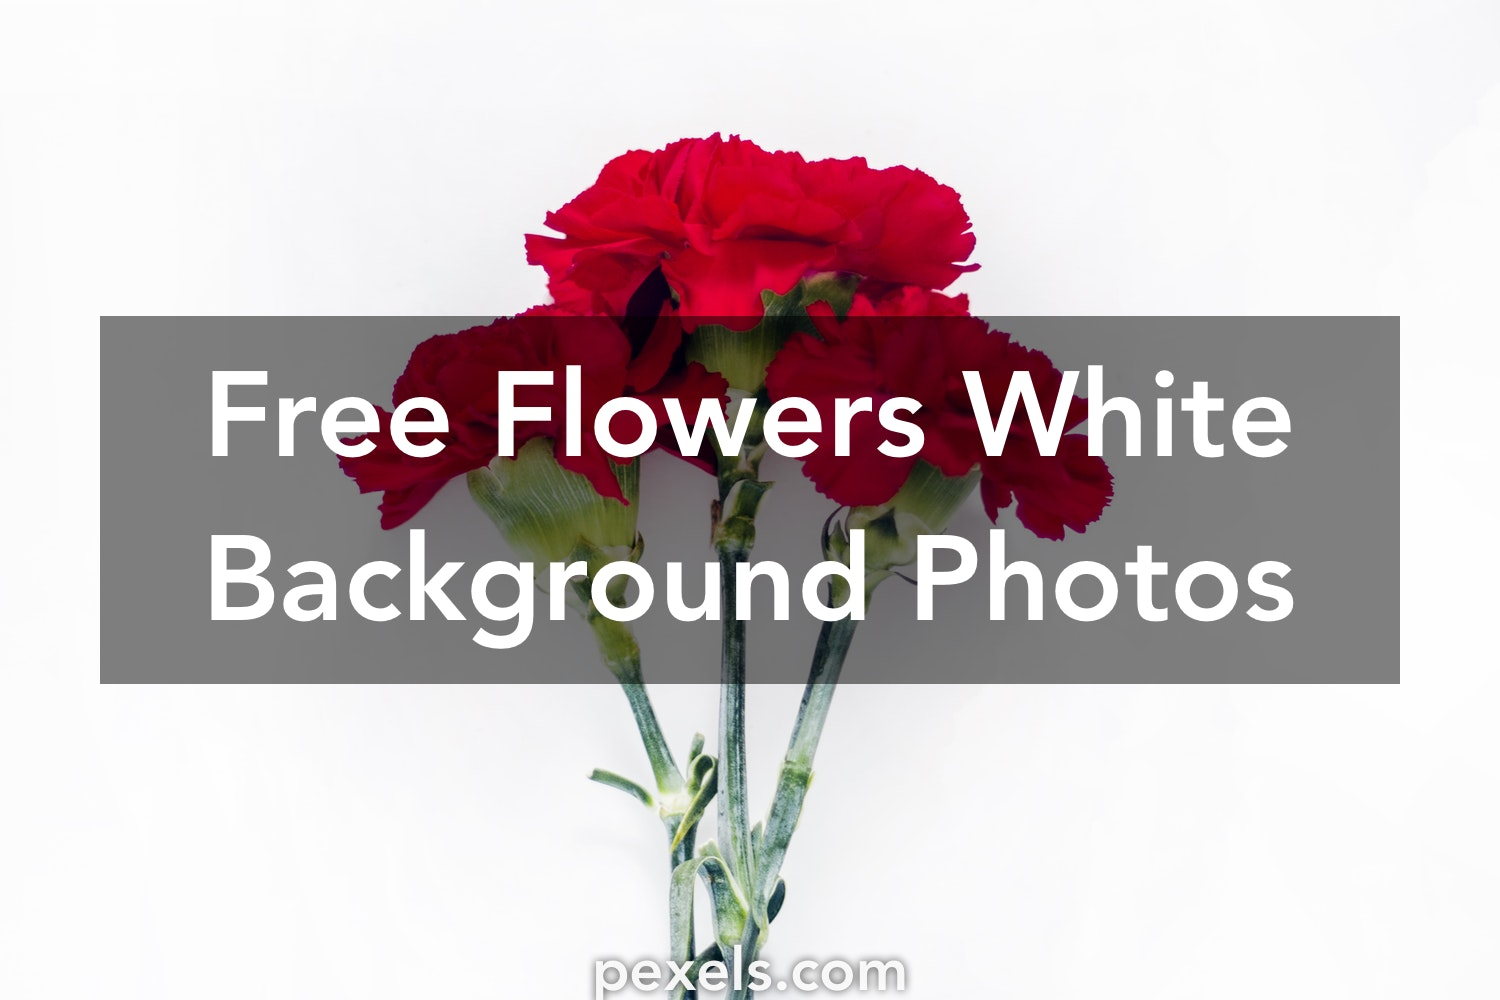 1000 engaging flowers white background photos pexels free stock 1000 engaging flowers white background photos pexels free stock photos mightylinksfo